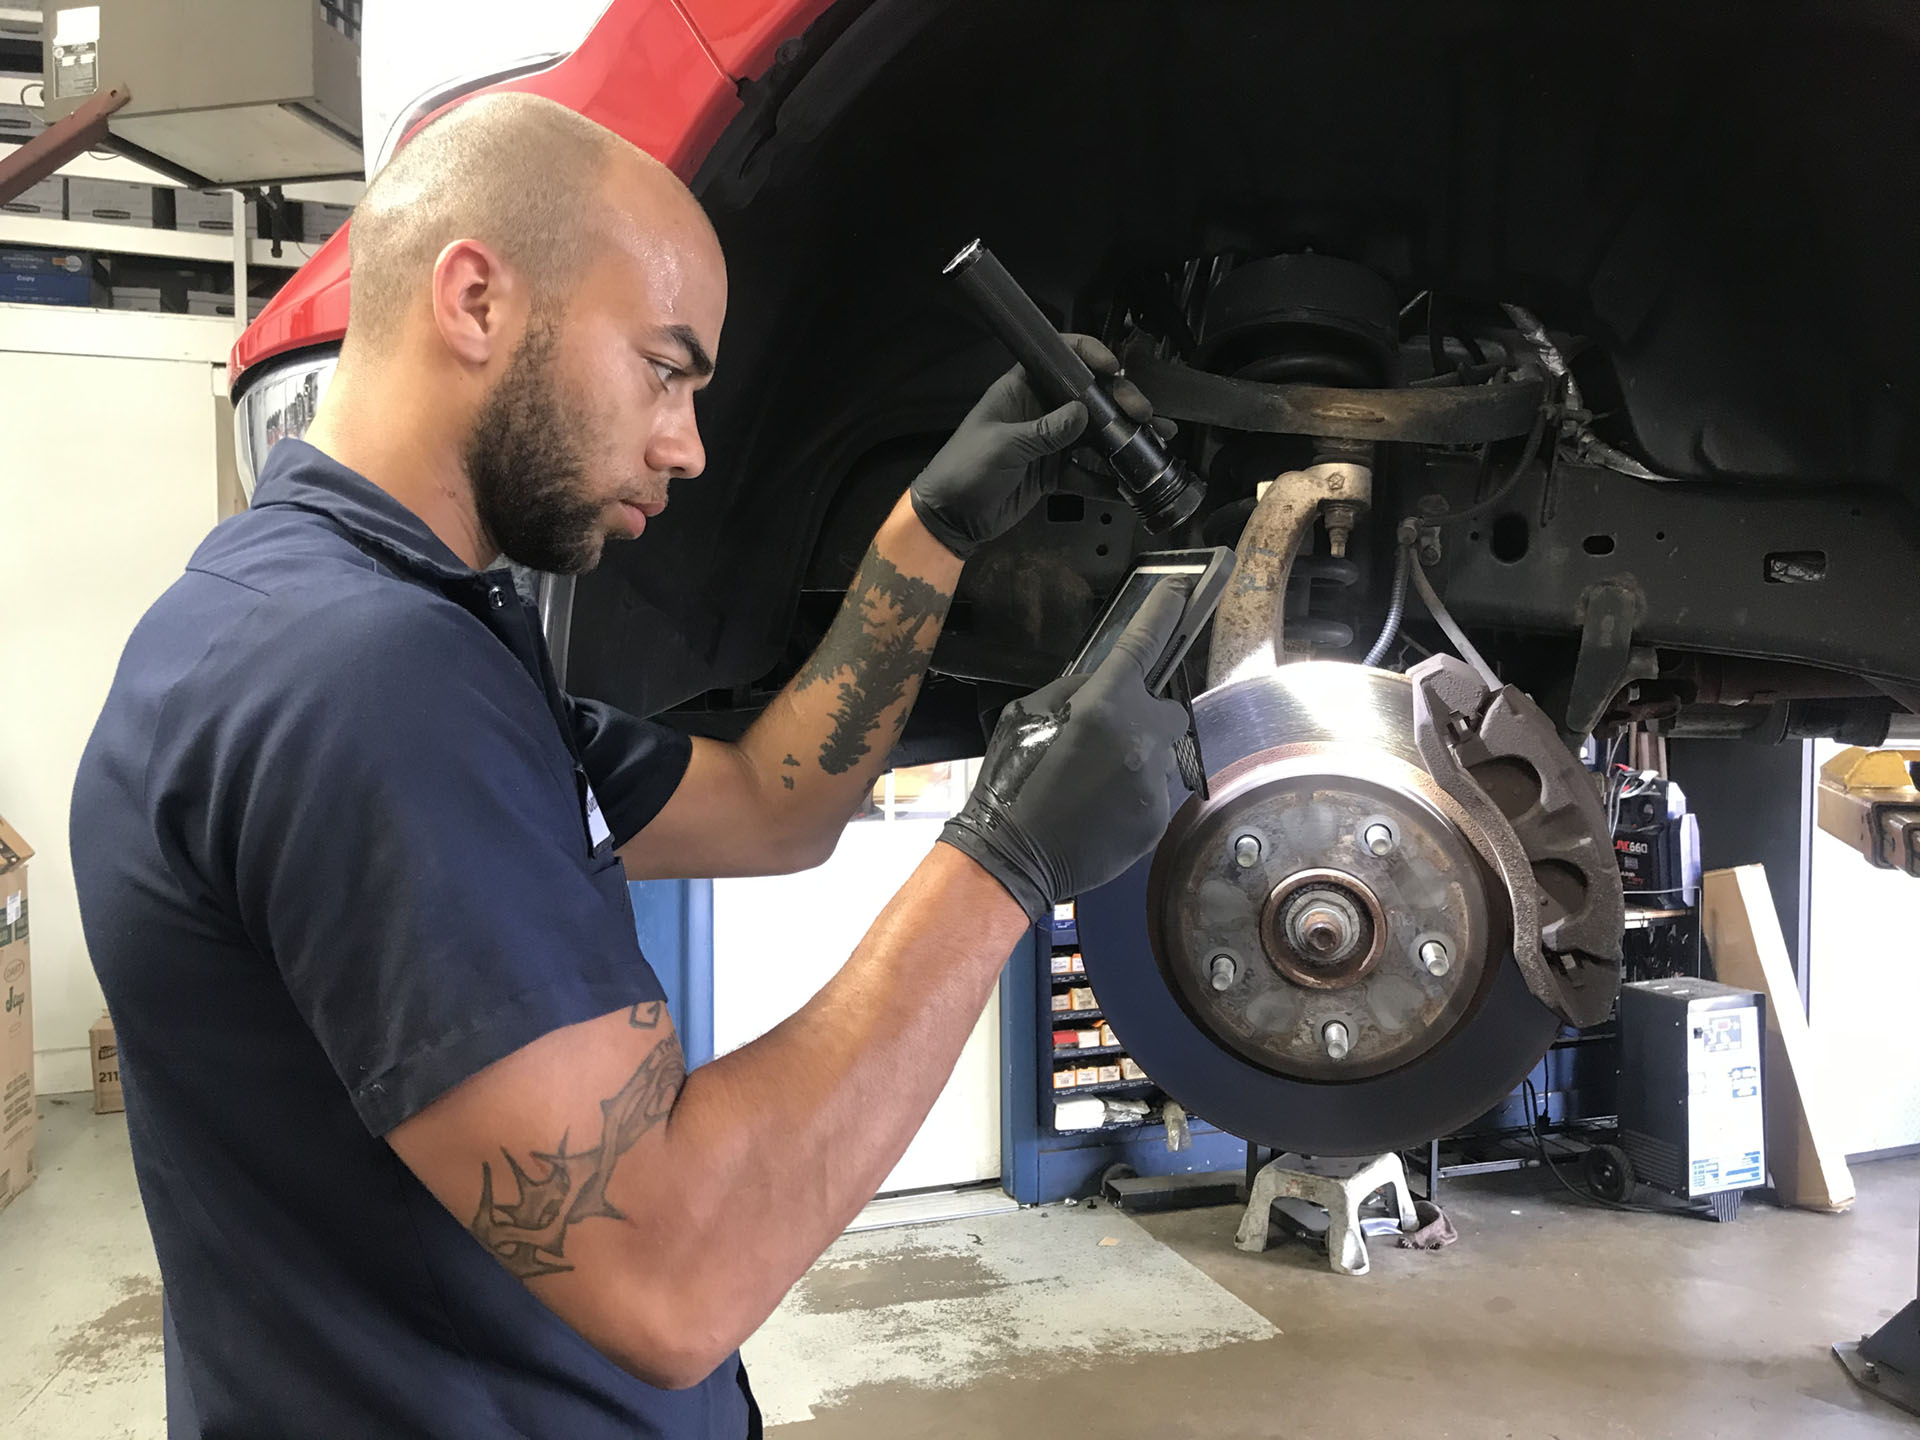 Digital inspections share details about needed car repairs